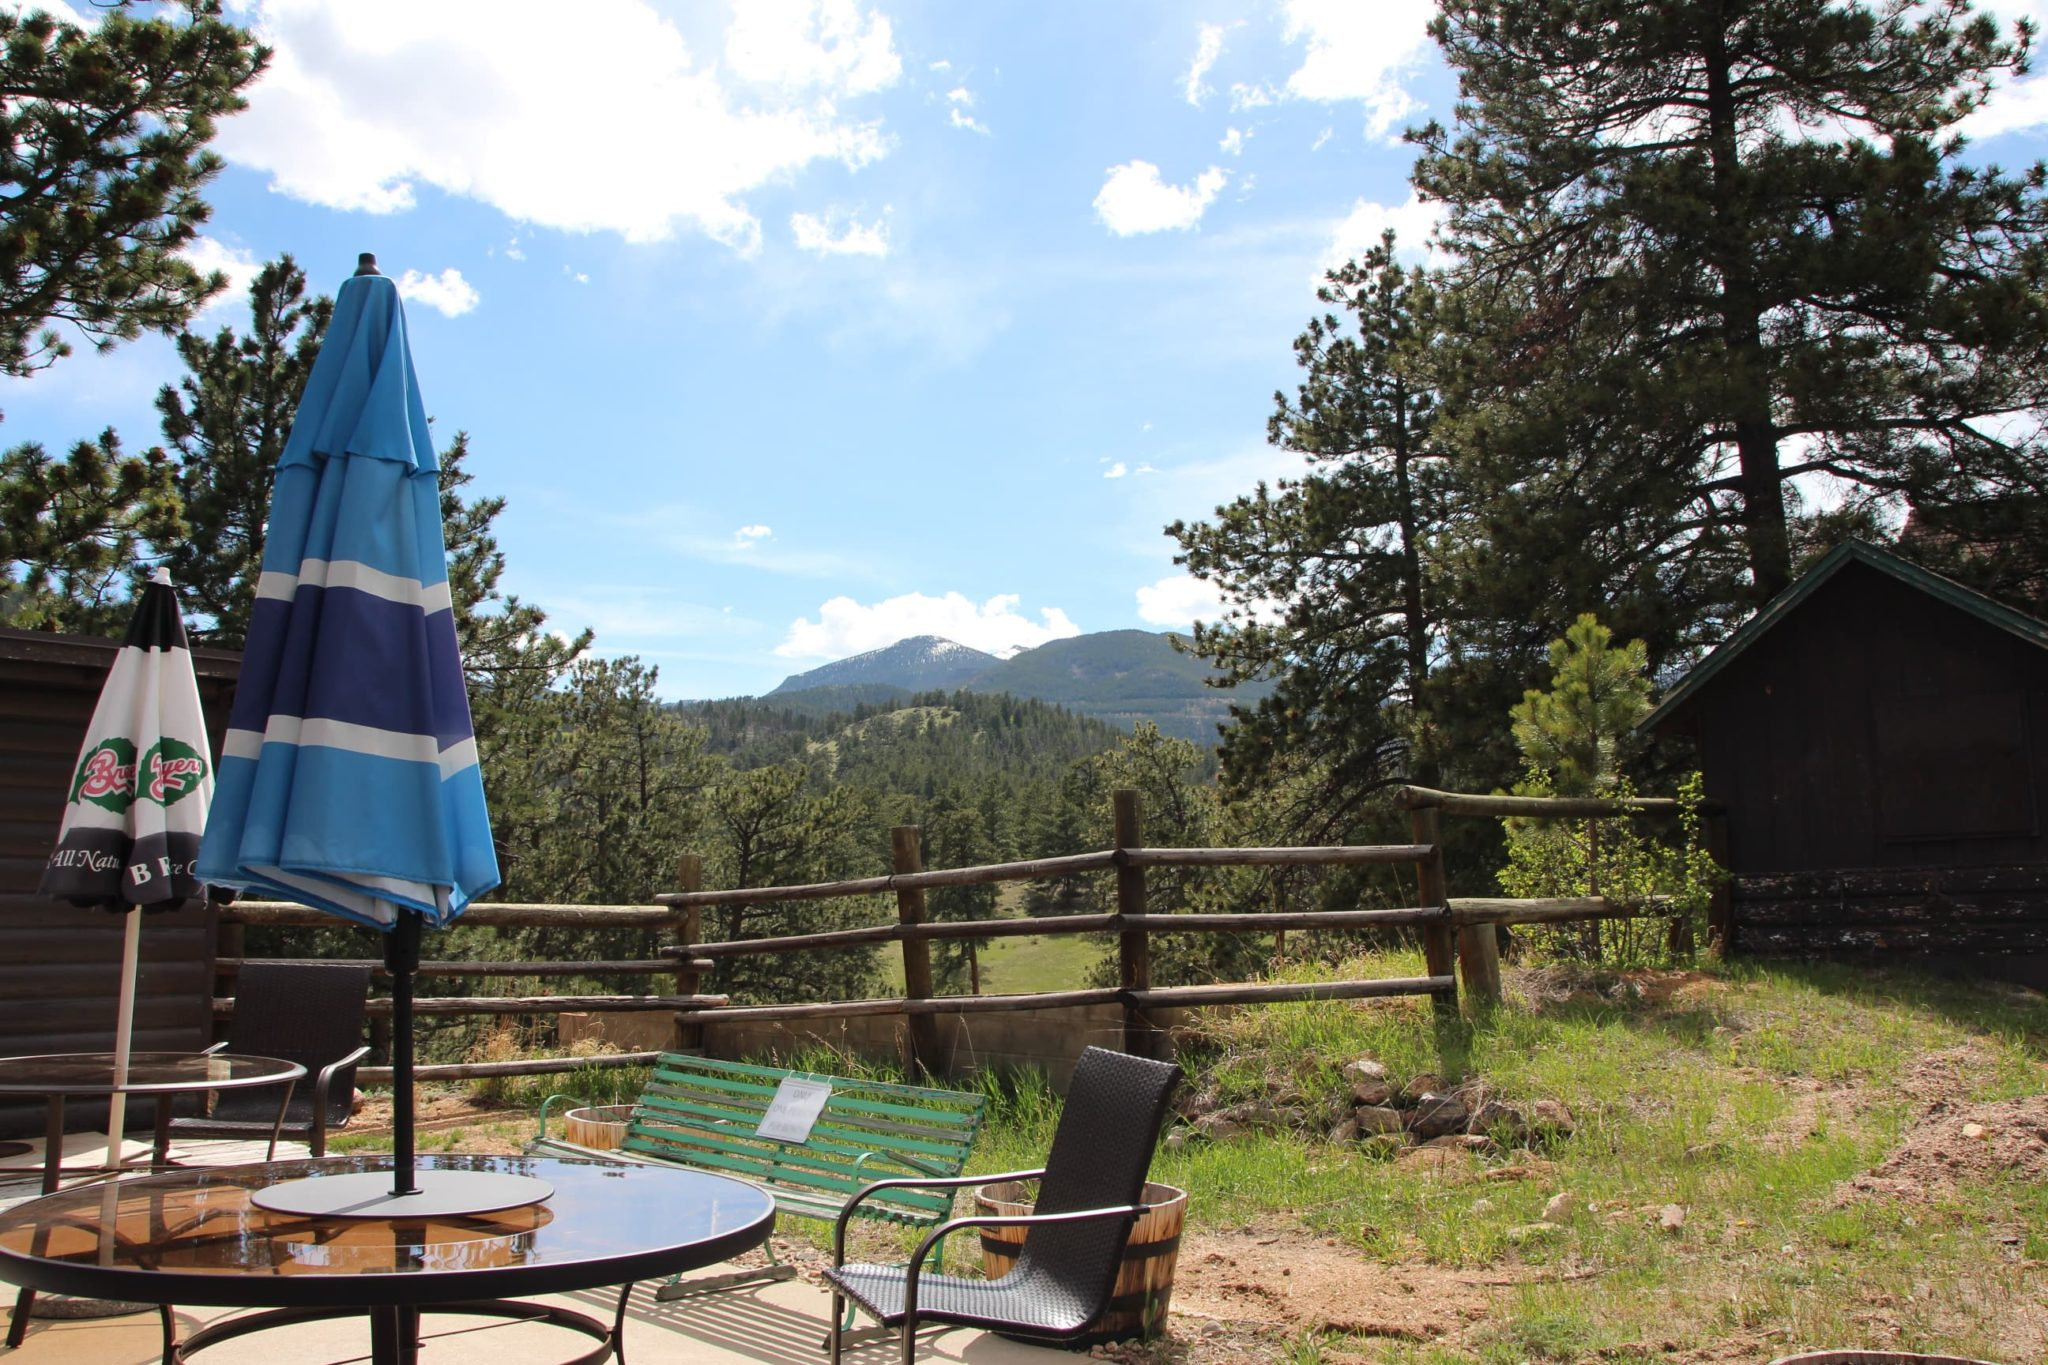 rocky mountain national park gateway services grocery groceries ice cream necessities camping outdoor souvenir